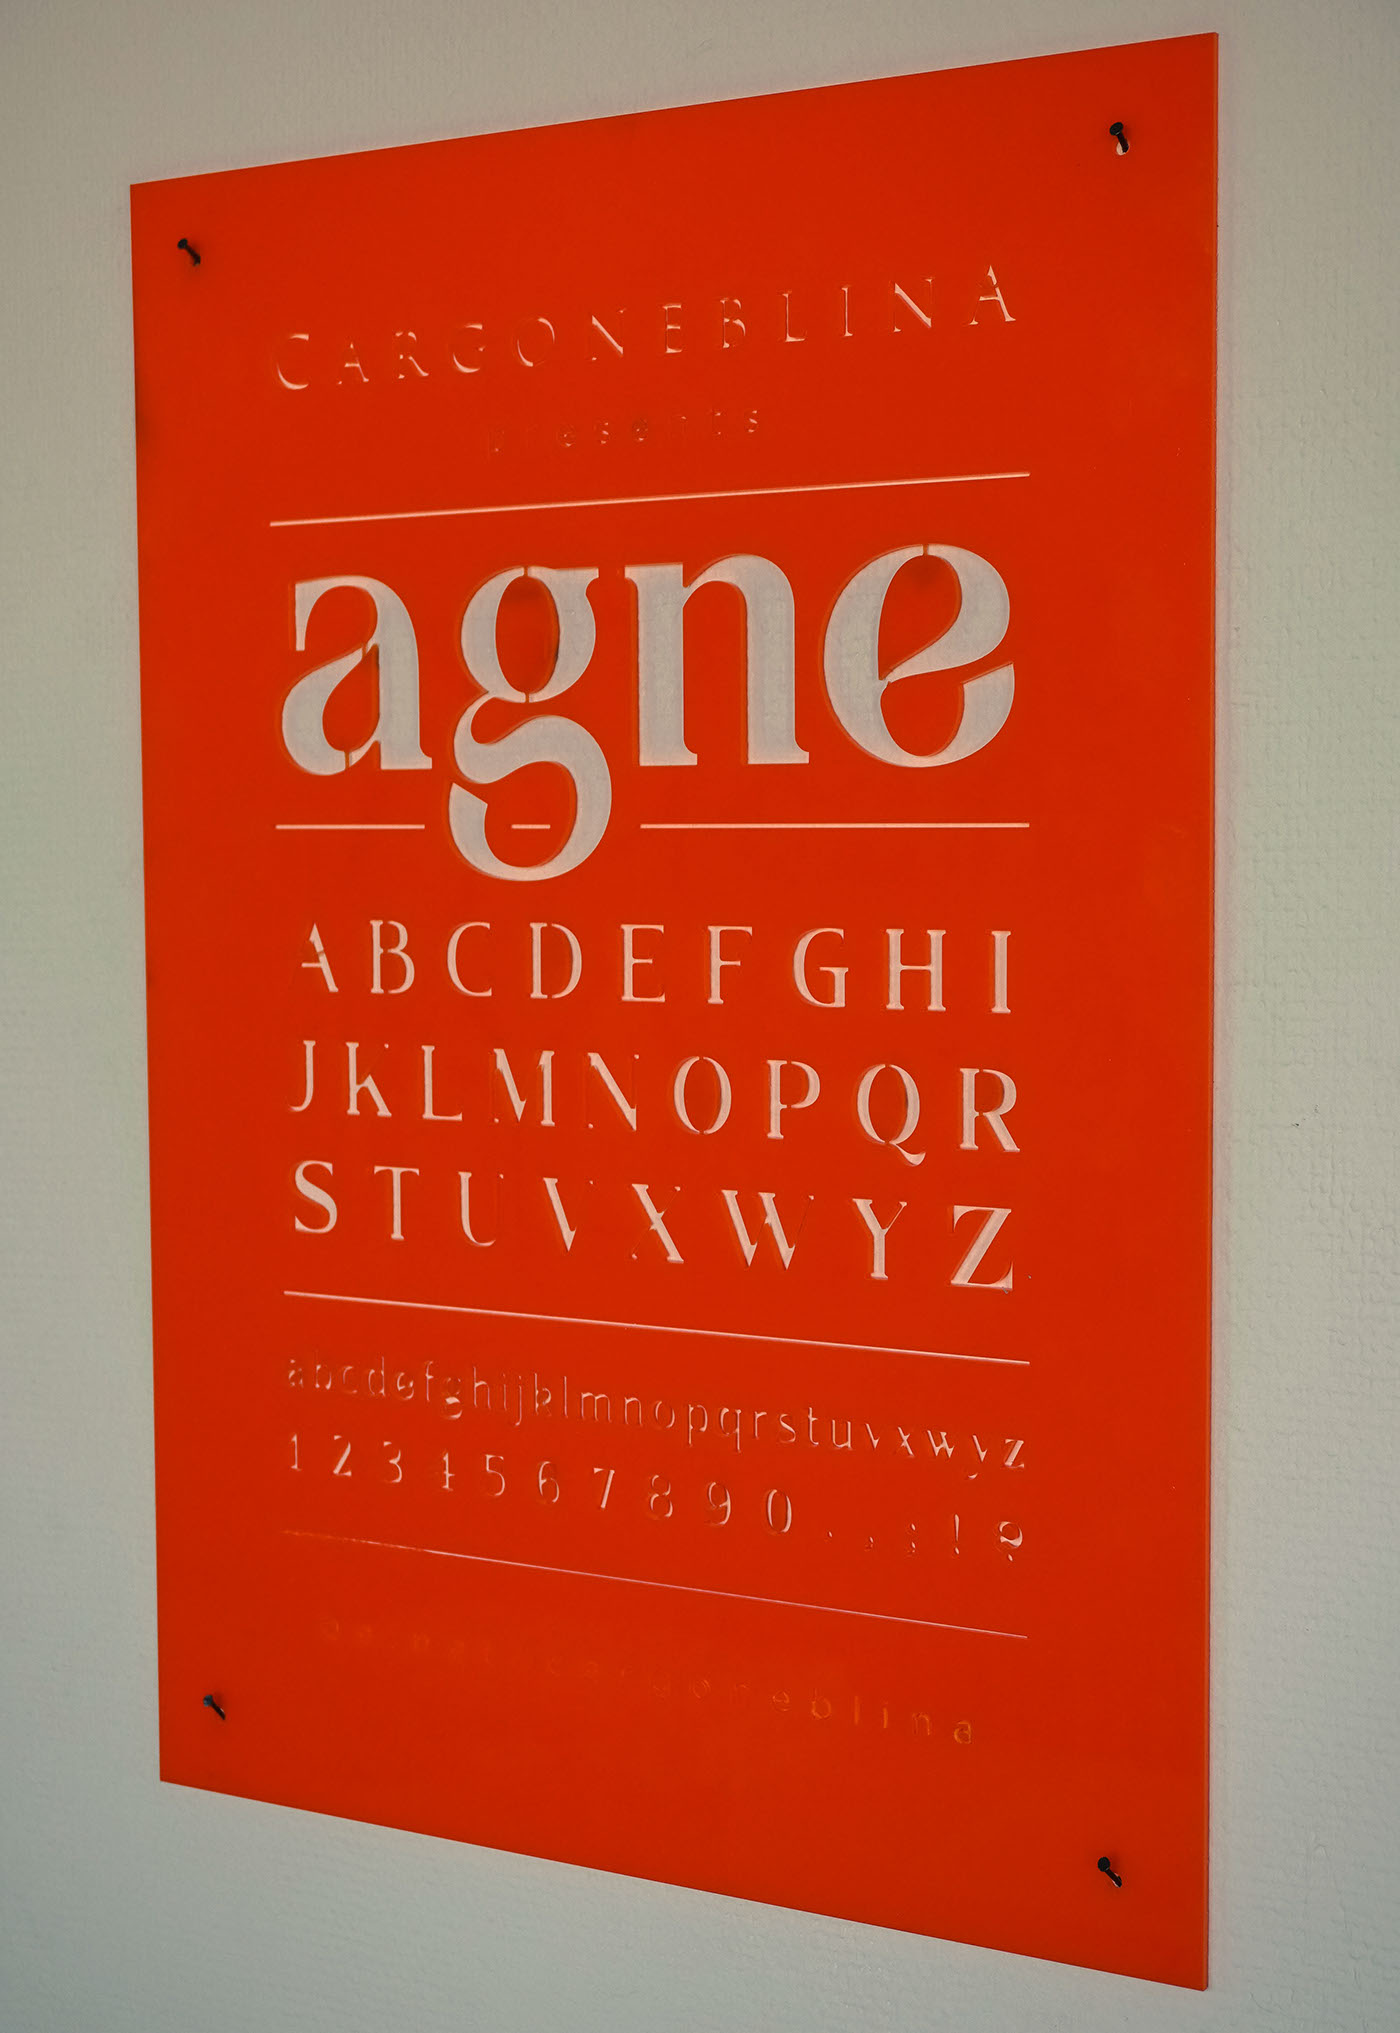 Agne,font,download,Typeface,typedesign,free